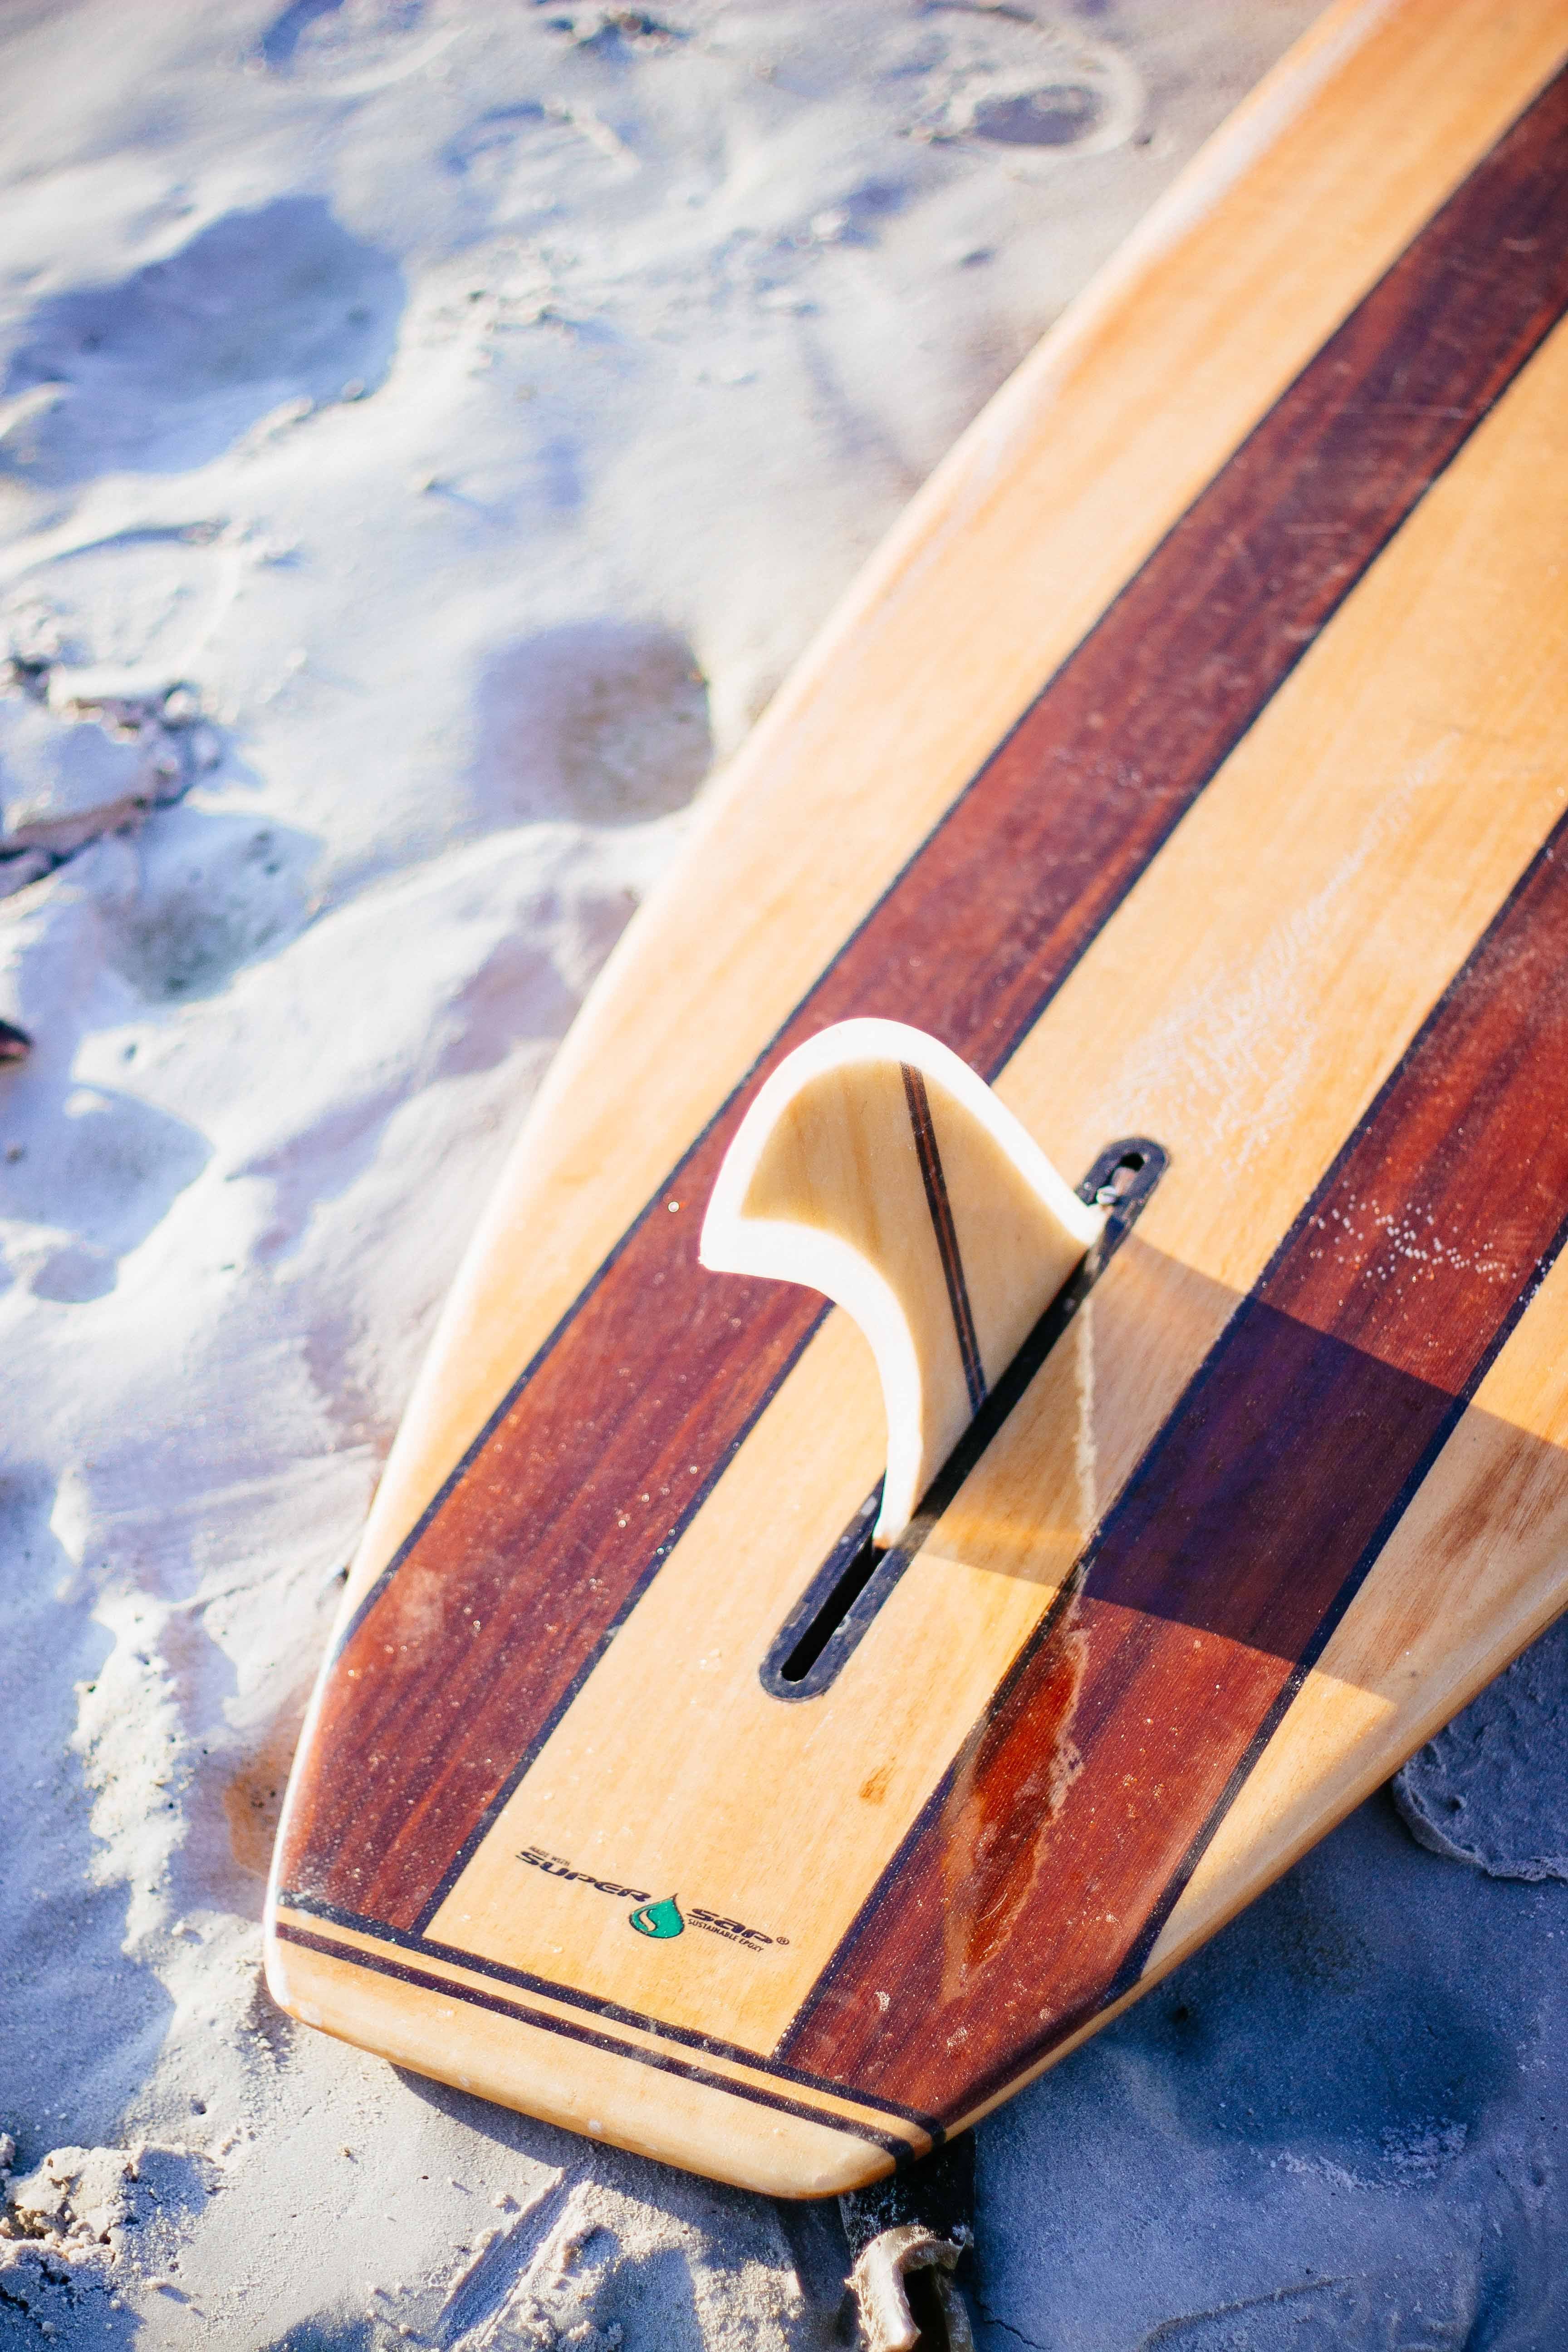 WOODPECKER Wooden Surfboard Manufacturer PASSIONrebel (19 of 29)